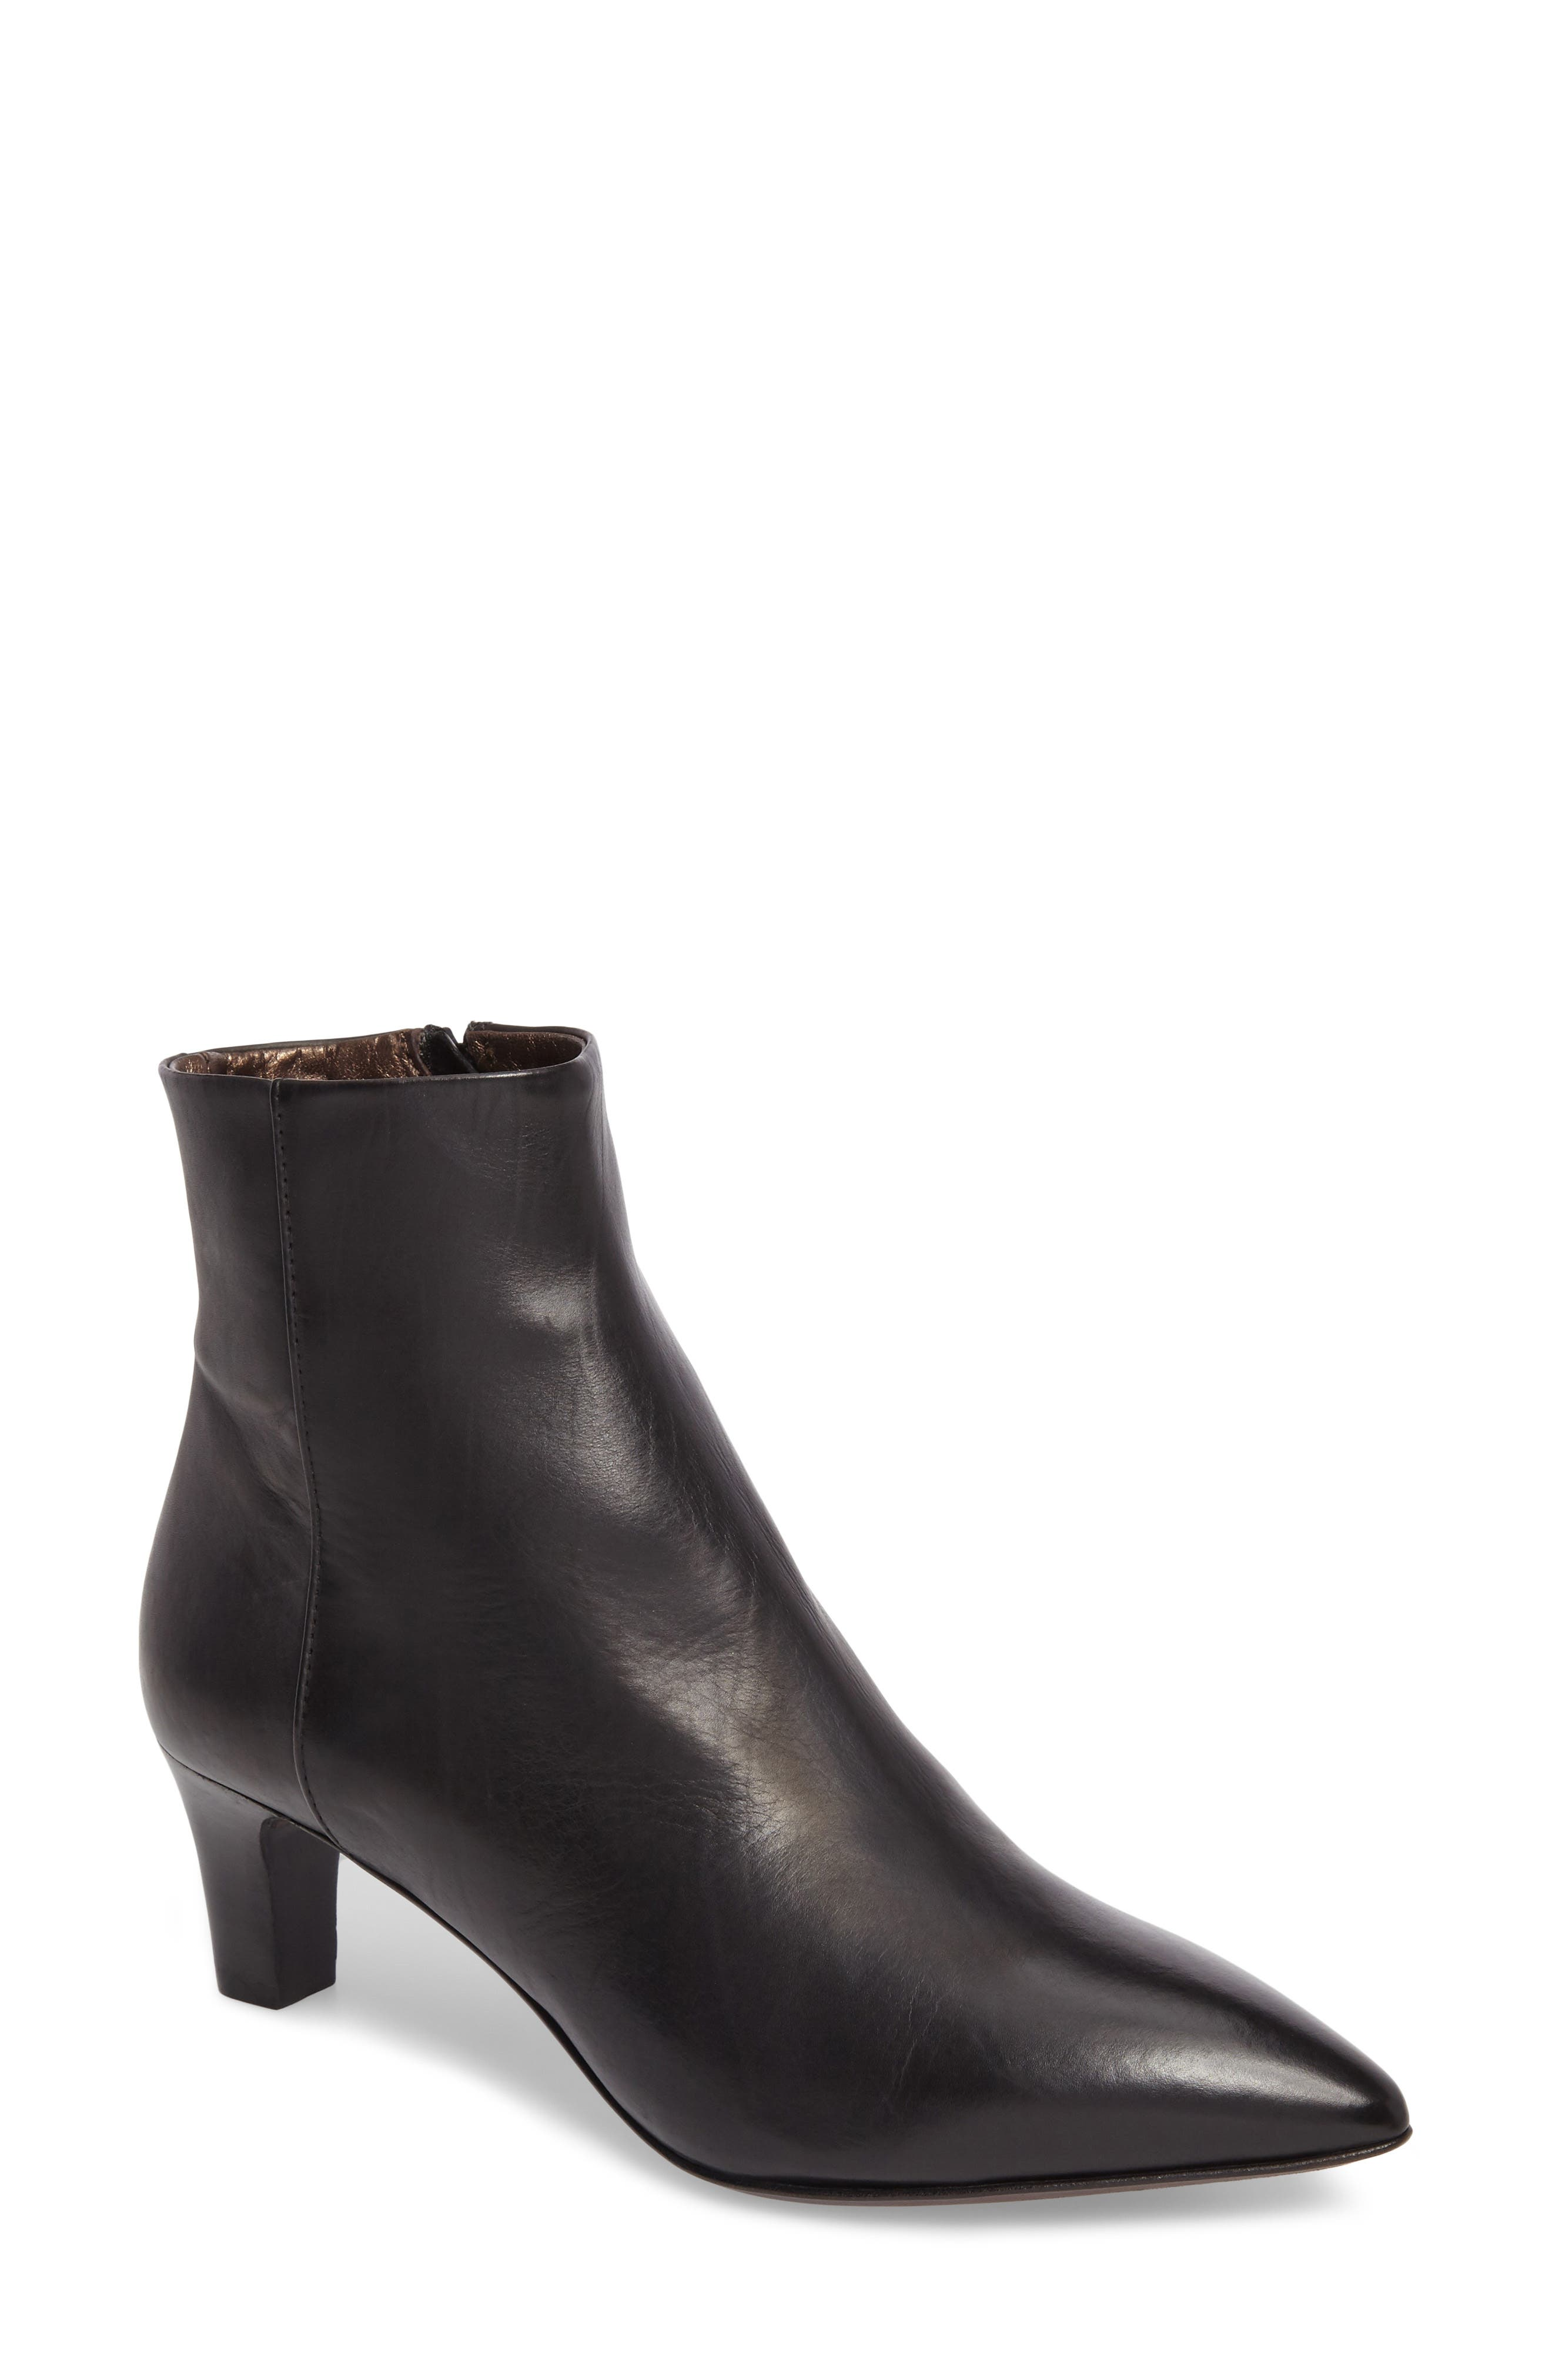 AG Pointed Toe Bootie,                             Main thumbnail 1, color,                             001